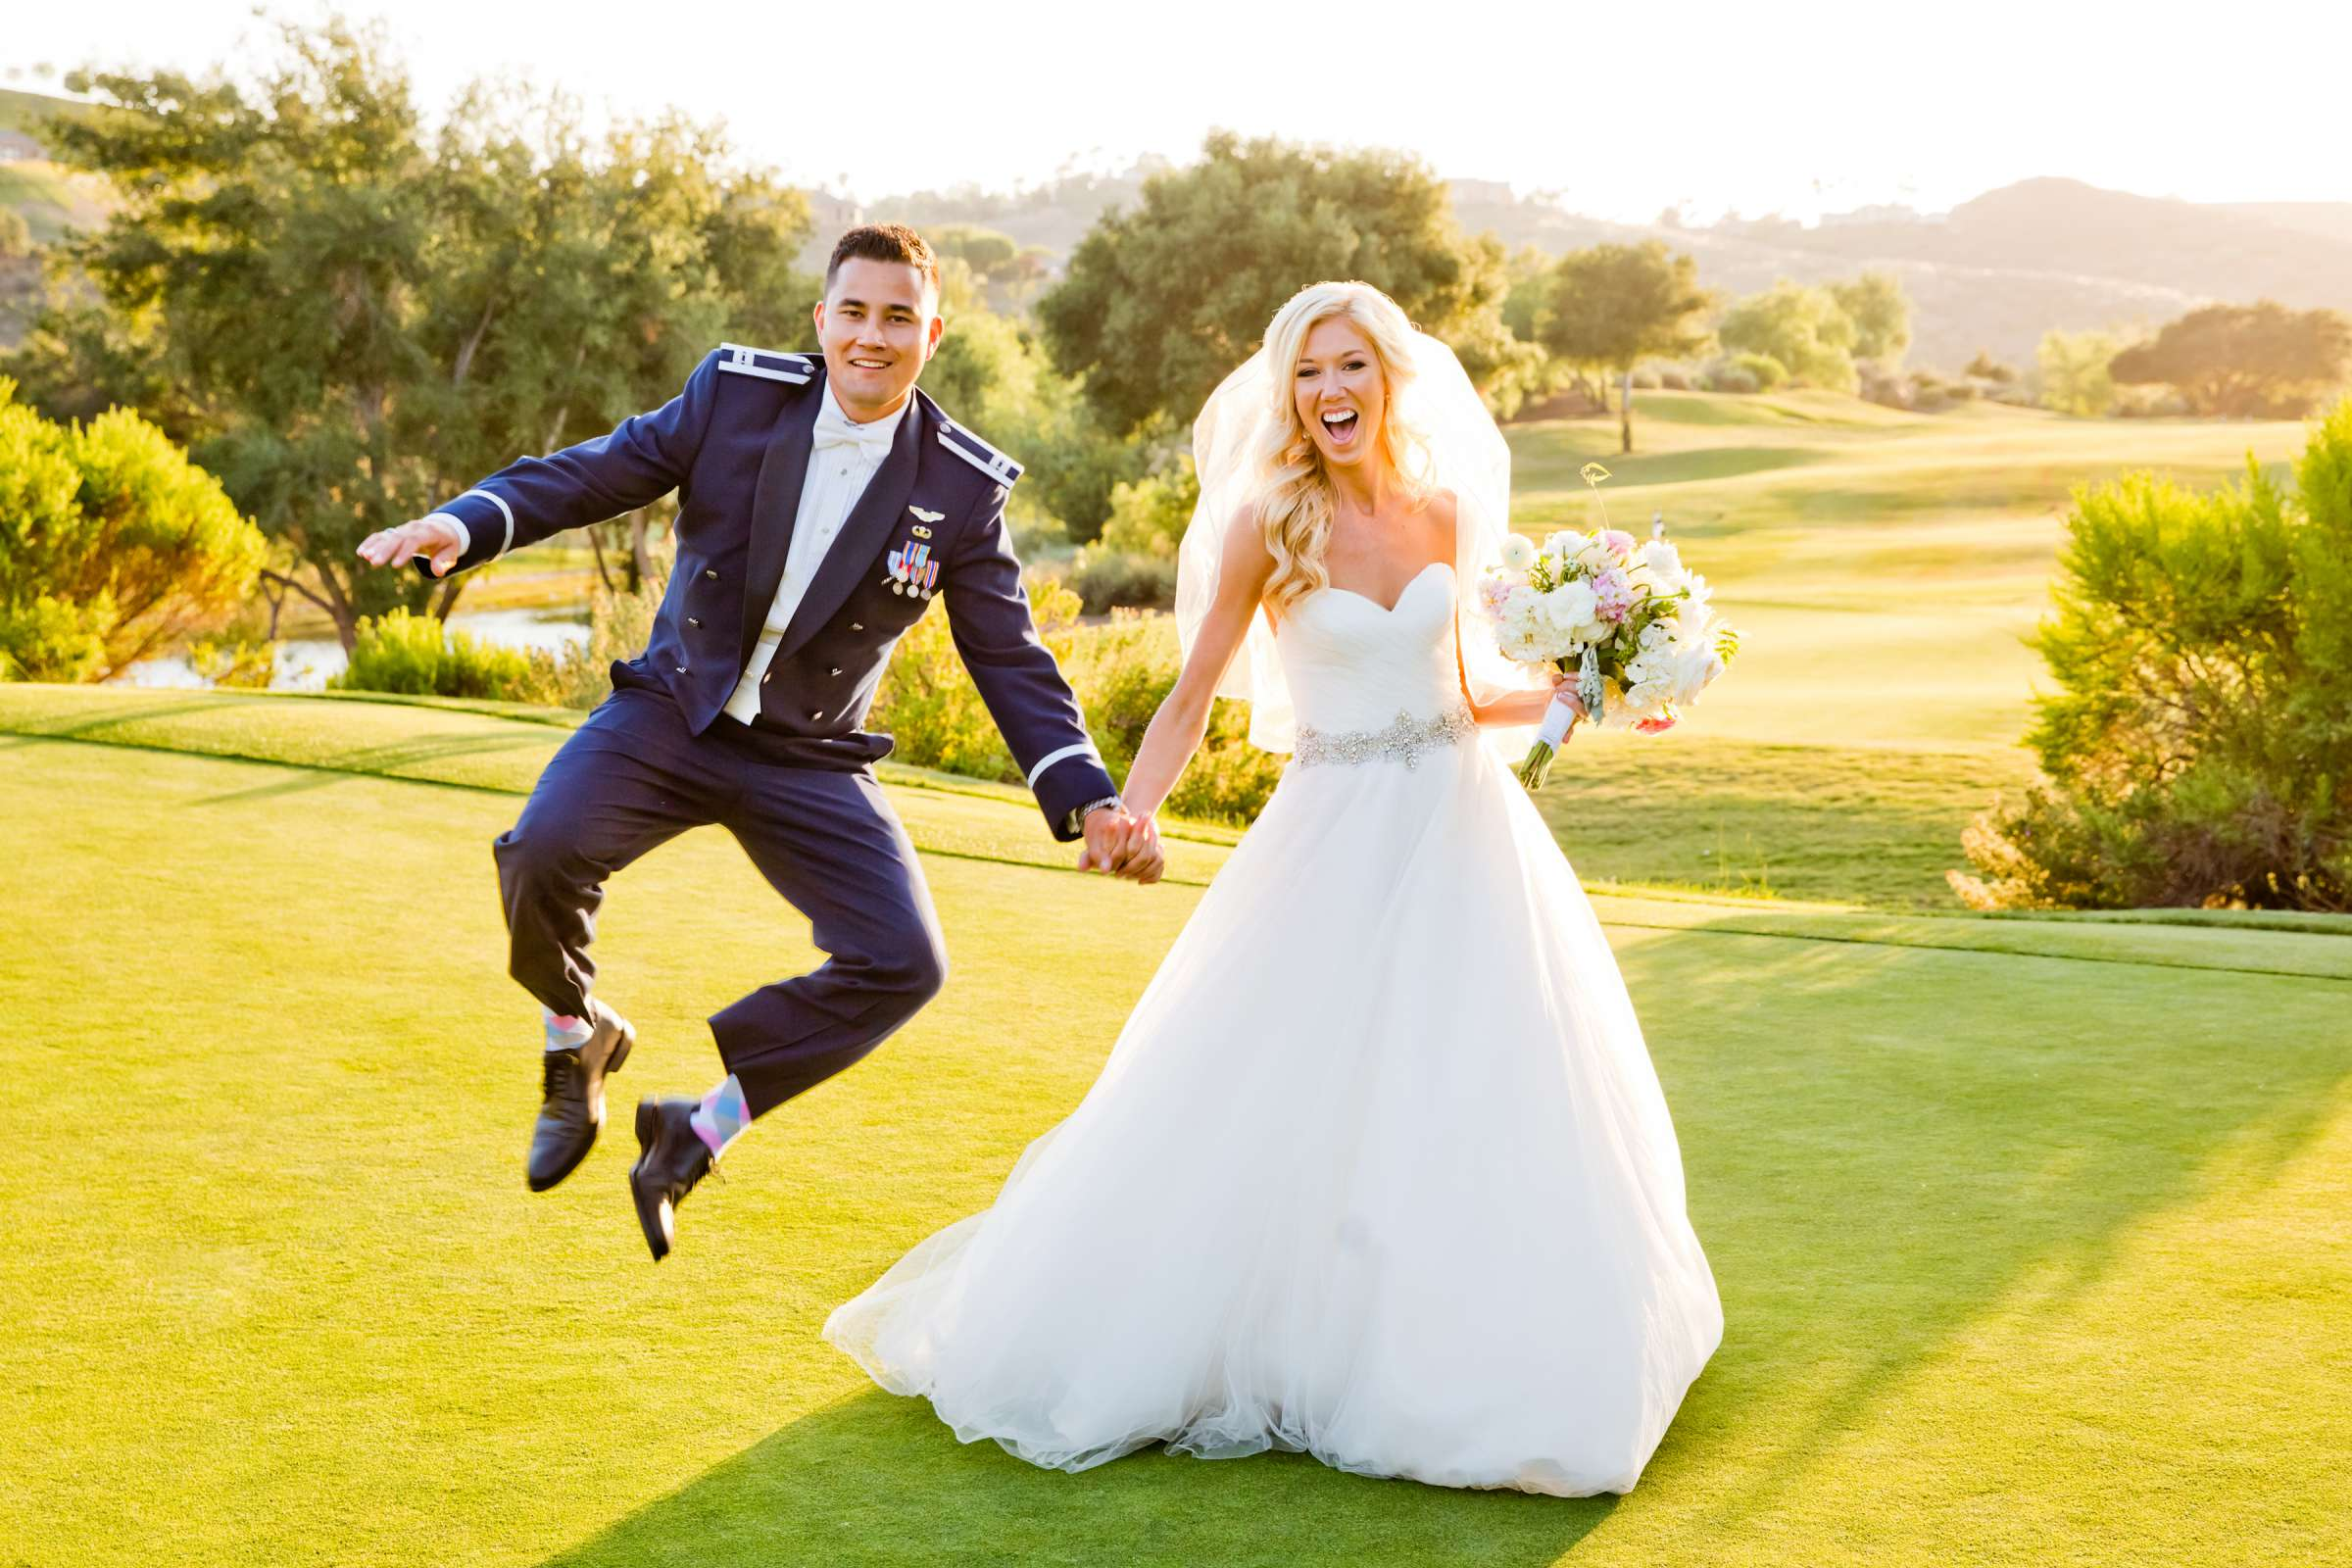 Maderas Golf Club Wedding coordinated by Tres Chic Affairs, Kelly and Kenneth Wedding Photo #1 by True Photography